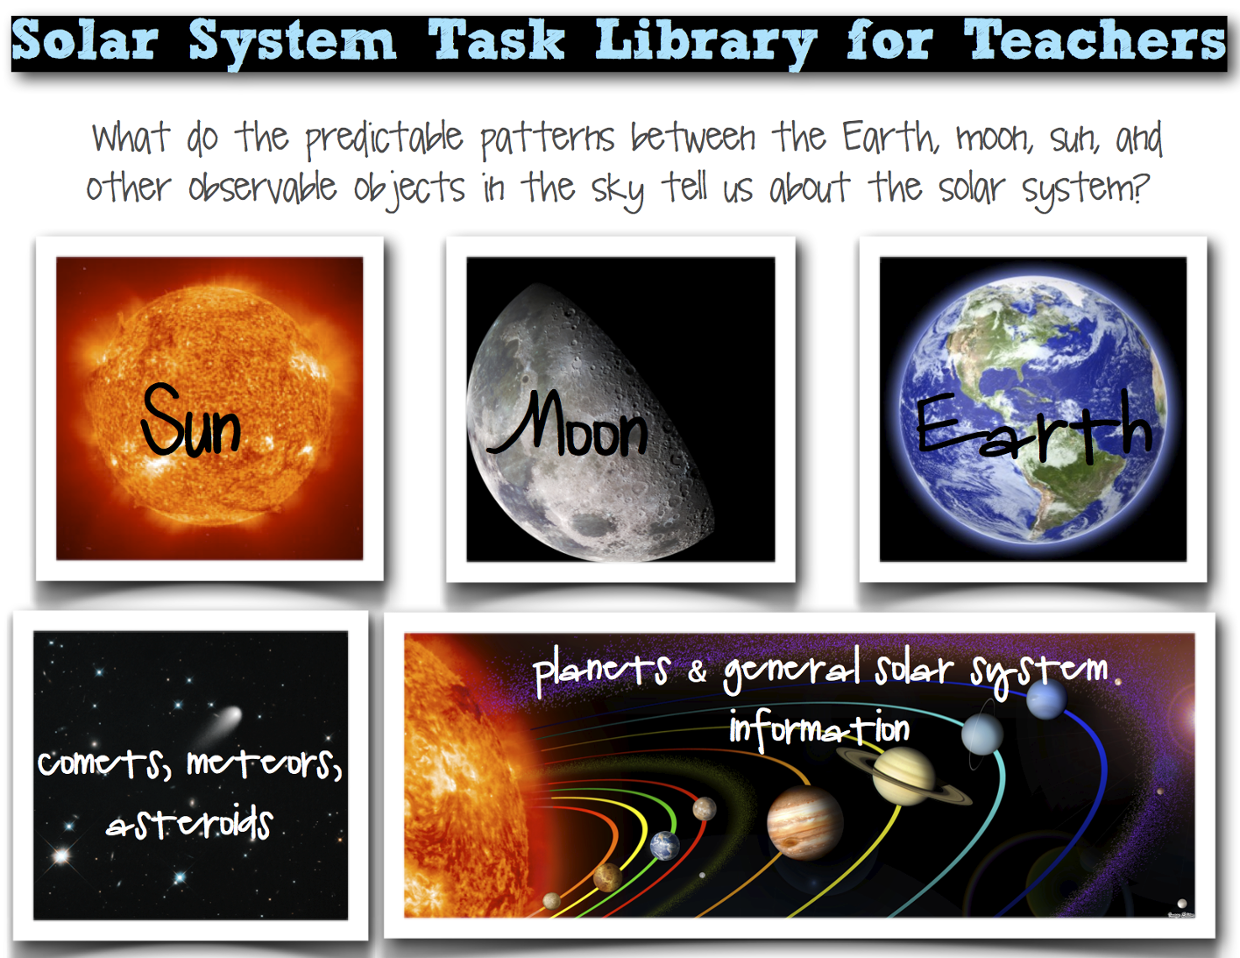 Solar System Task Library for Teachers